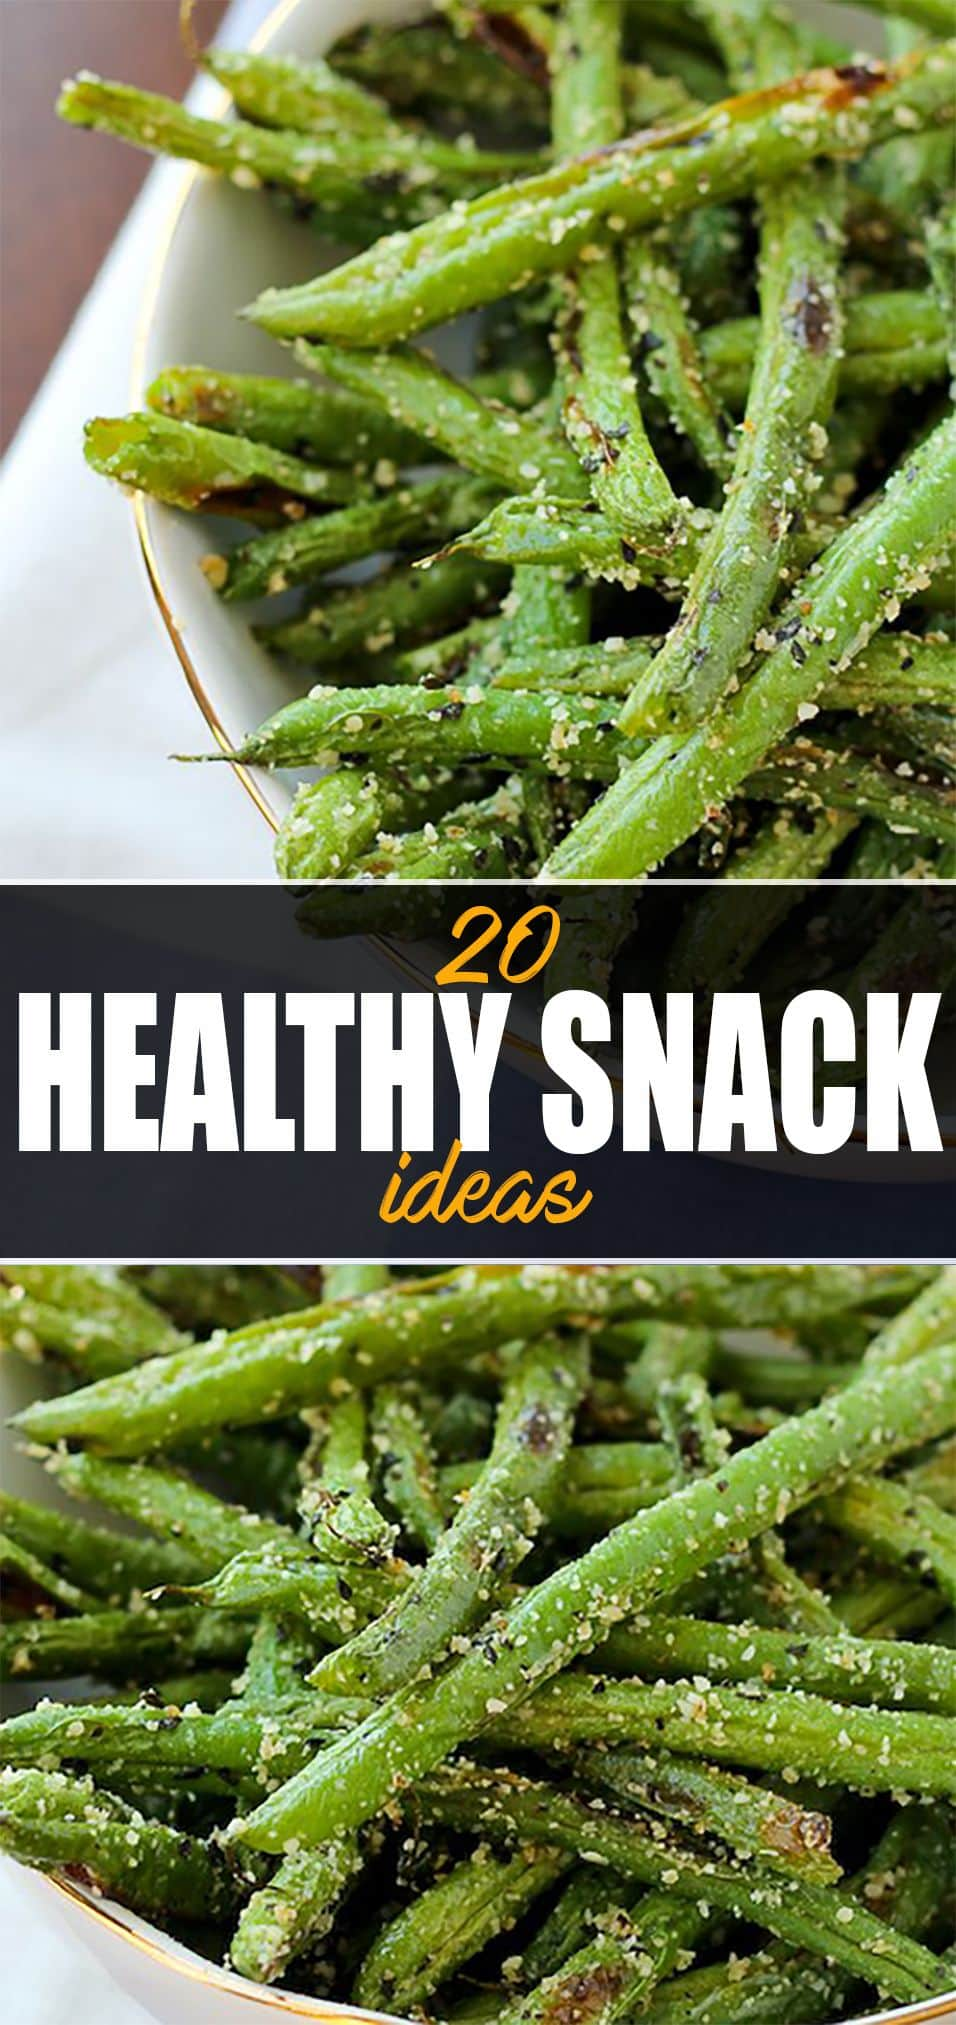 20 Easy Healthy Snack Ideas - Green Beans